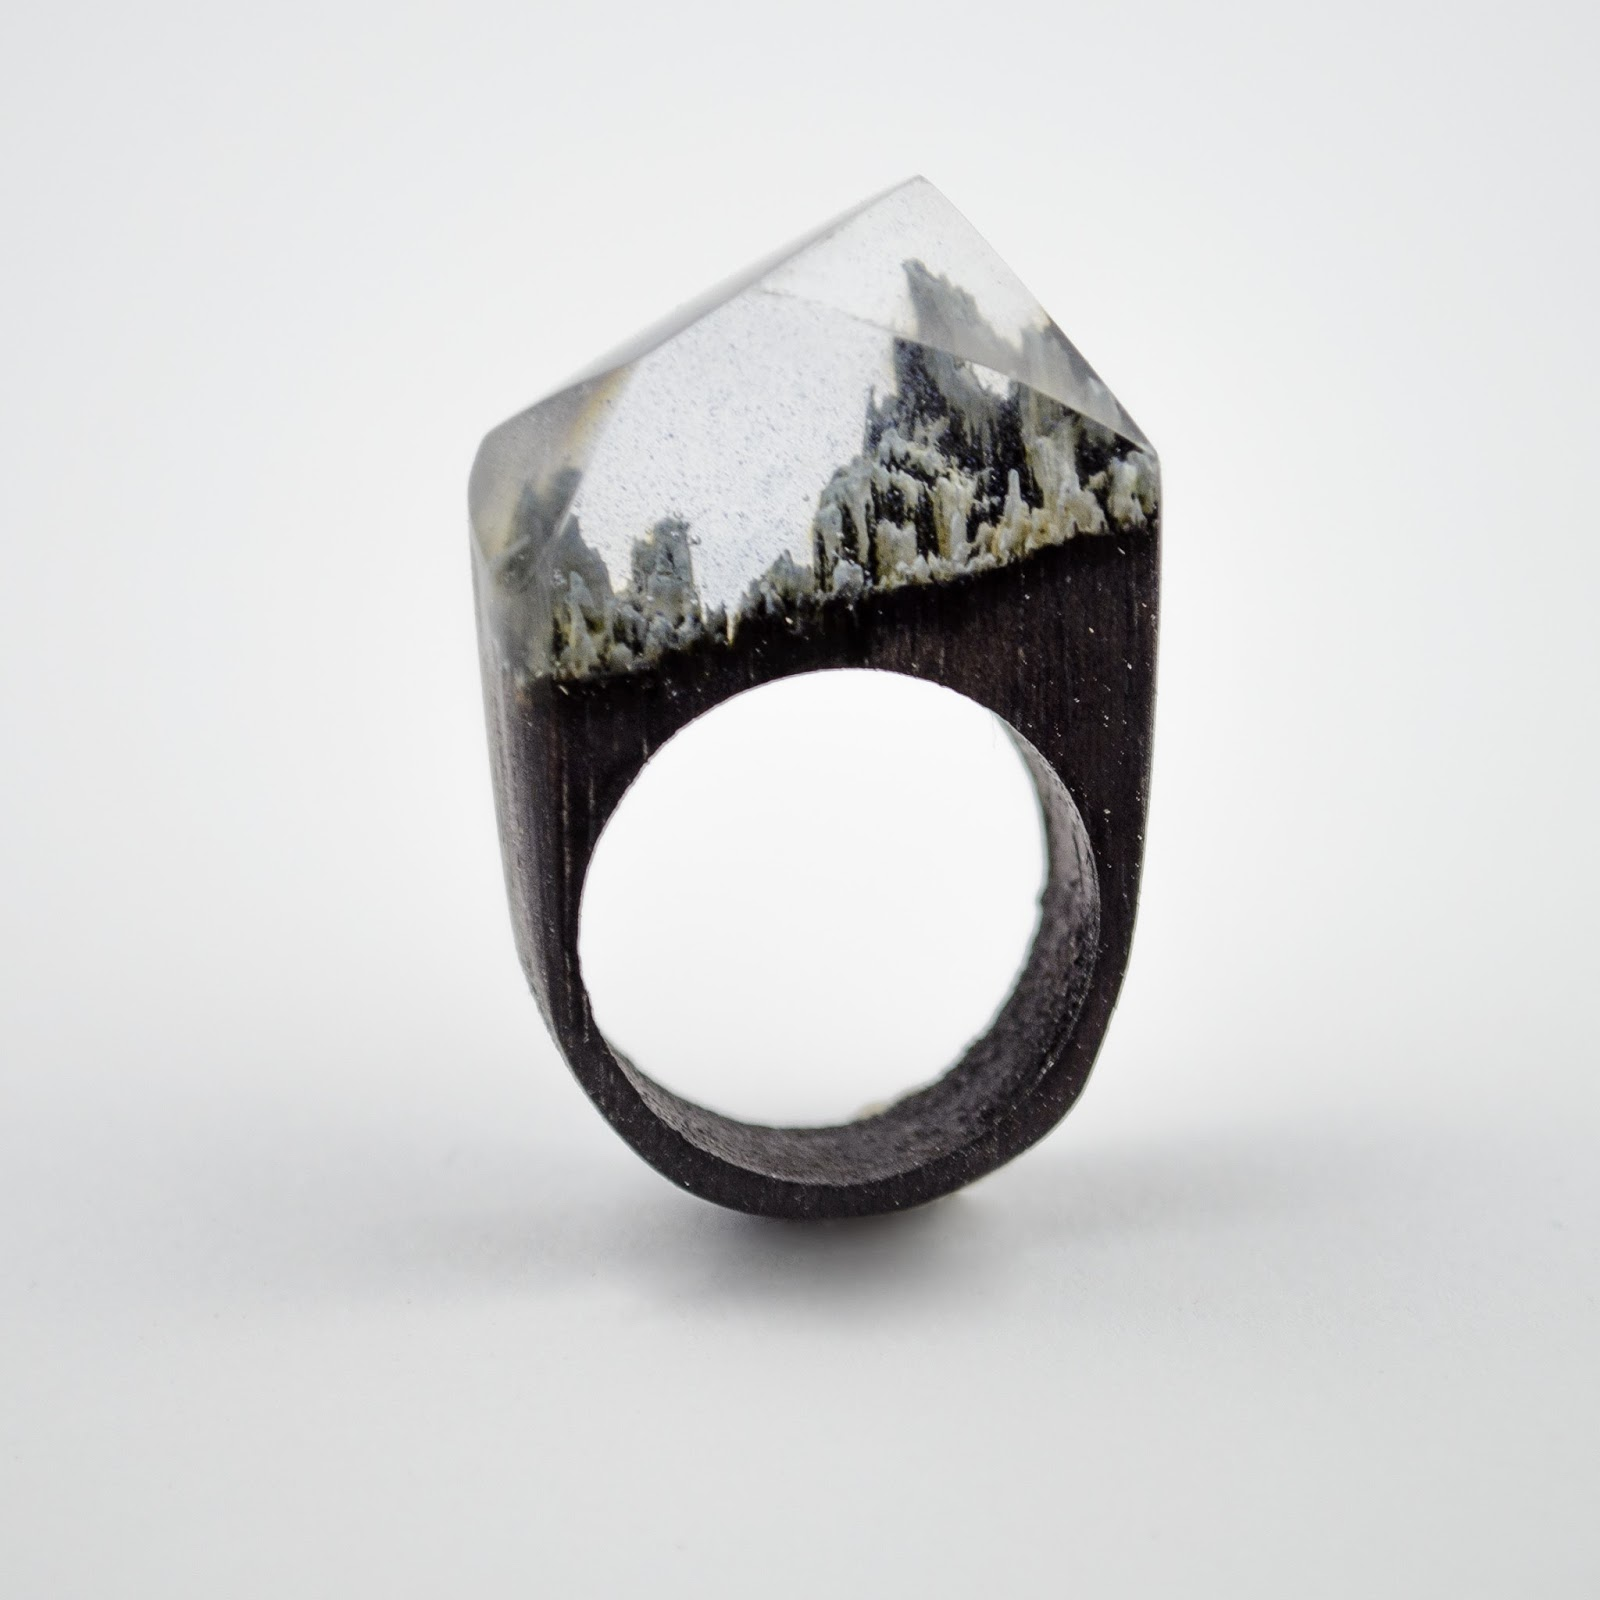 OKTIE Black Winter Mountain Wood Resin Ring HandMade Wooden Gift For Her Box Free Engraving